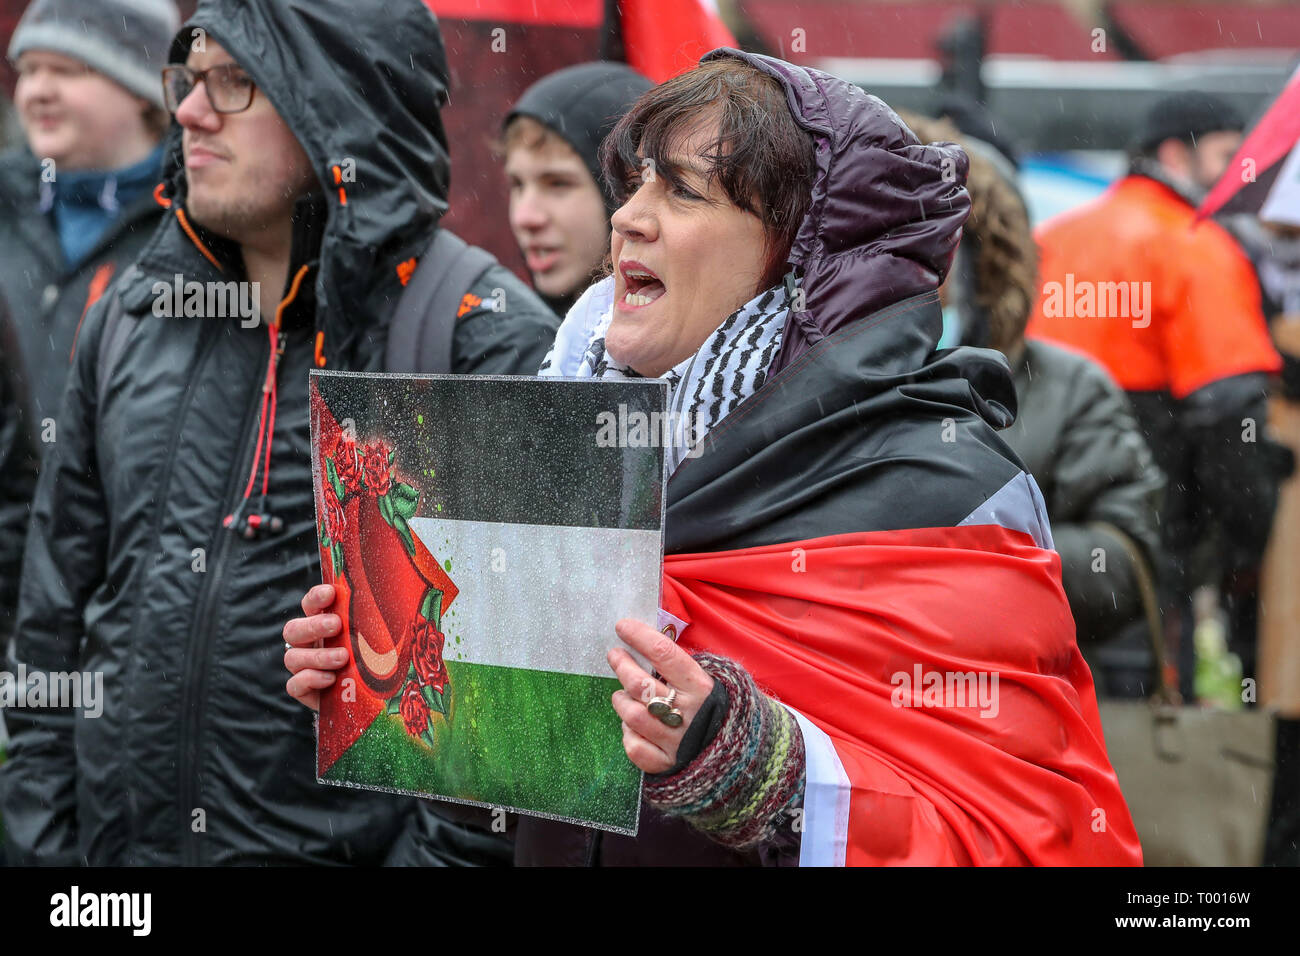 Glasgow, Scotland, UK. 16th Mar, 2019. Several hundred demonstrators turned up, despite the heavy rain, to take part in the Stand up to Racism March through Glasgow city centre as part of the worldwide 'Stand up to Racism' campaign. Several interest groups took part including Pro-Palestine and Anti-Semitic supporters requiring the substantial police presence to keep them apart although all were allowed to take part in the parade. Credit: Findlay/Alamy Live News - Stock Image